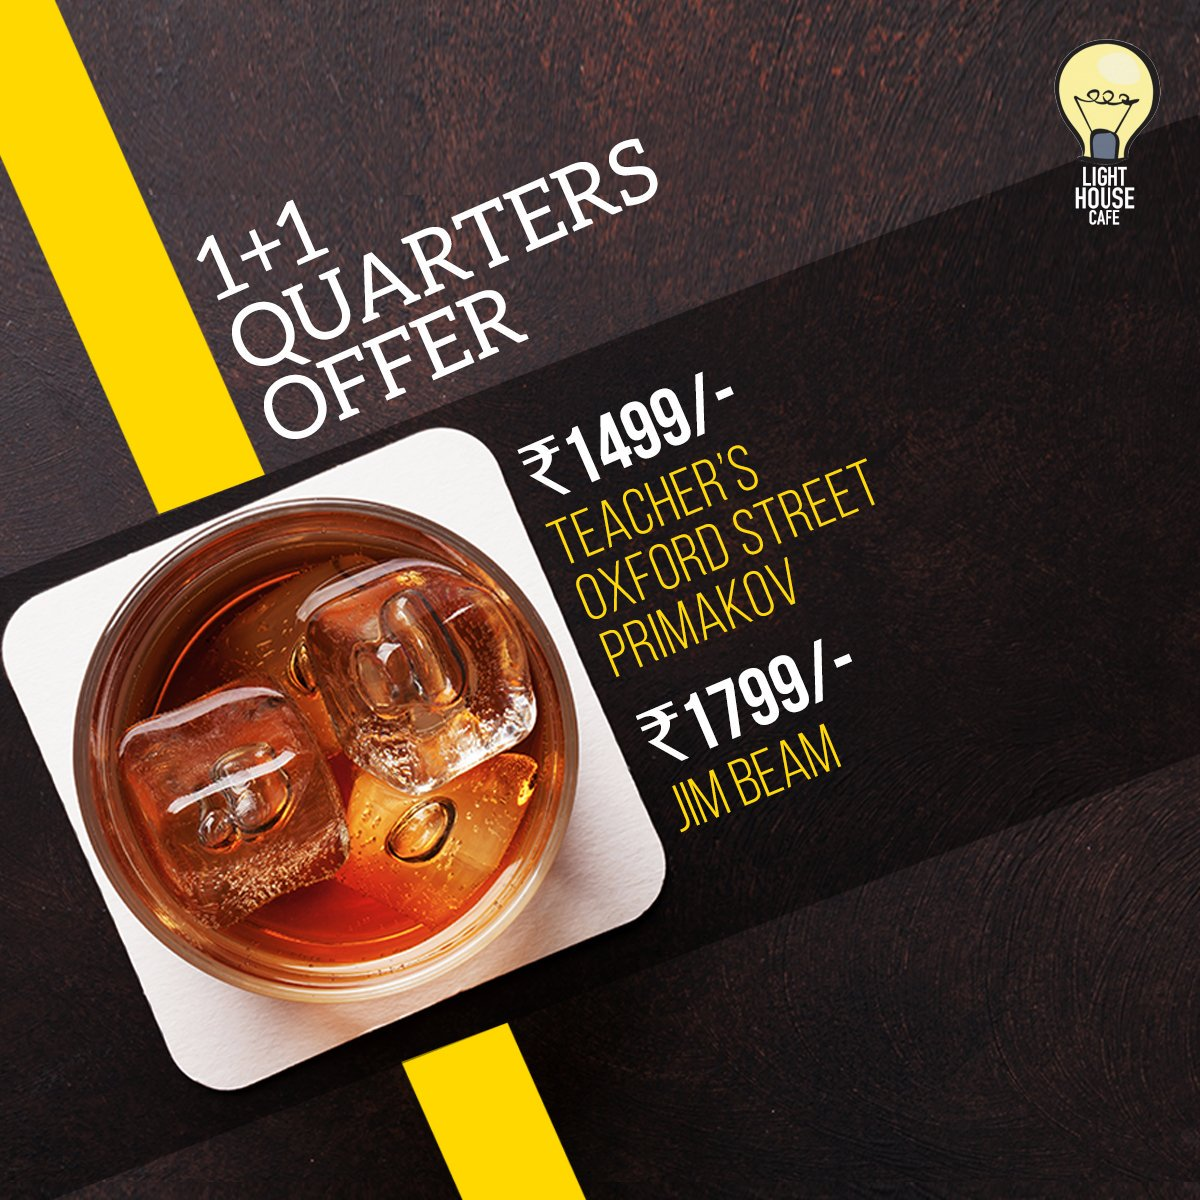 Be on the happy journey & get your week started with our 1 + 1 Quarters Offer only at Light House Cafe Mumbai  #LHC #Worli #Mumbai #Zomato #Blogpost #bloggers #Weekday #CurlyTales #Weekends #Thingstodo #Mumbaifoodie #Foodgasm #mumbaifood #indianblogger #dailyfoodfeed #blogspot